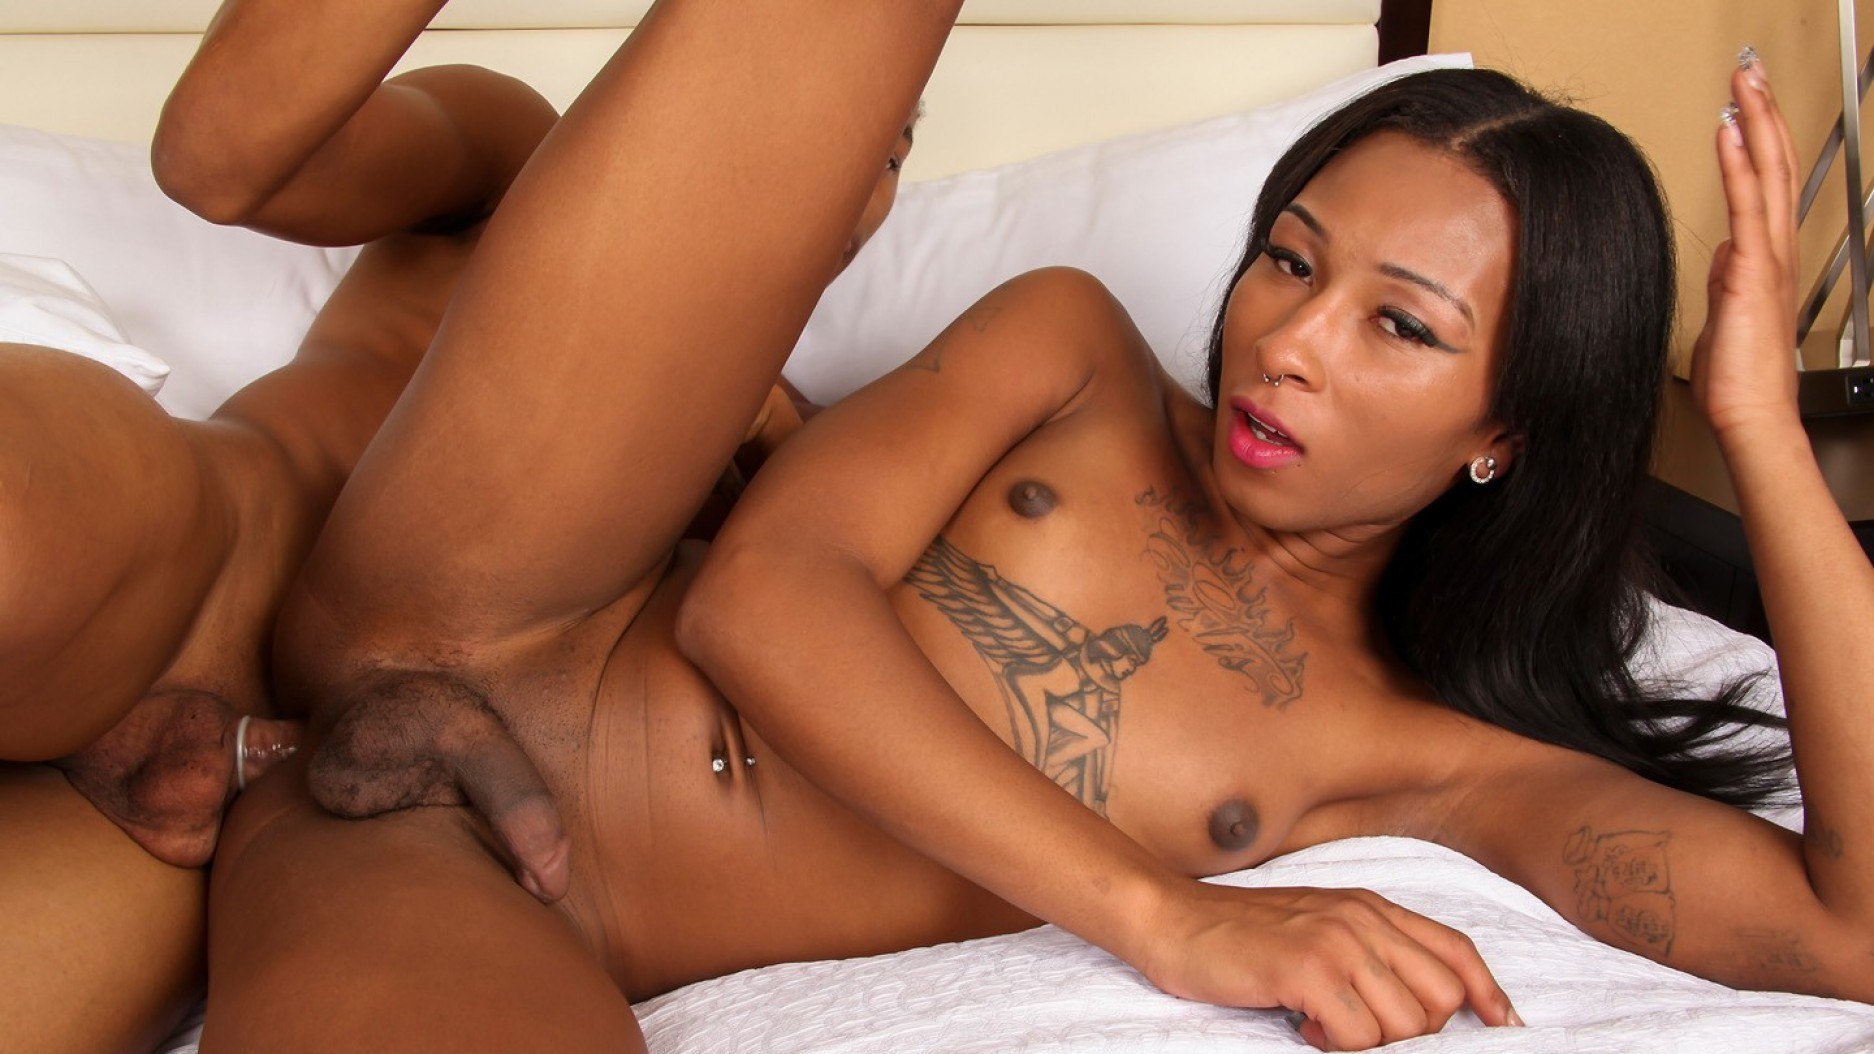 Shemale Fucked Female Sex Pornsite 112